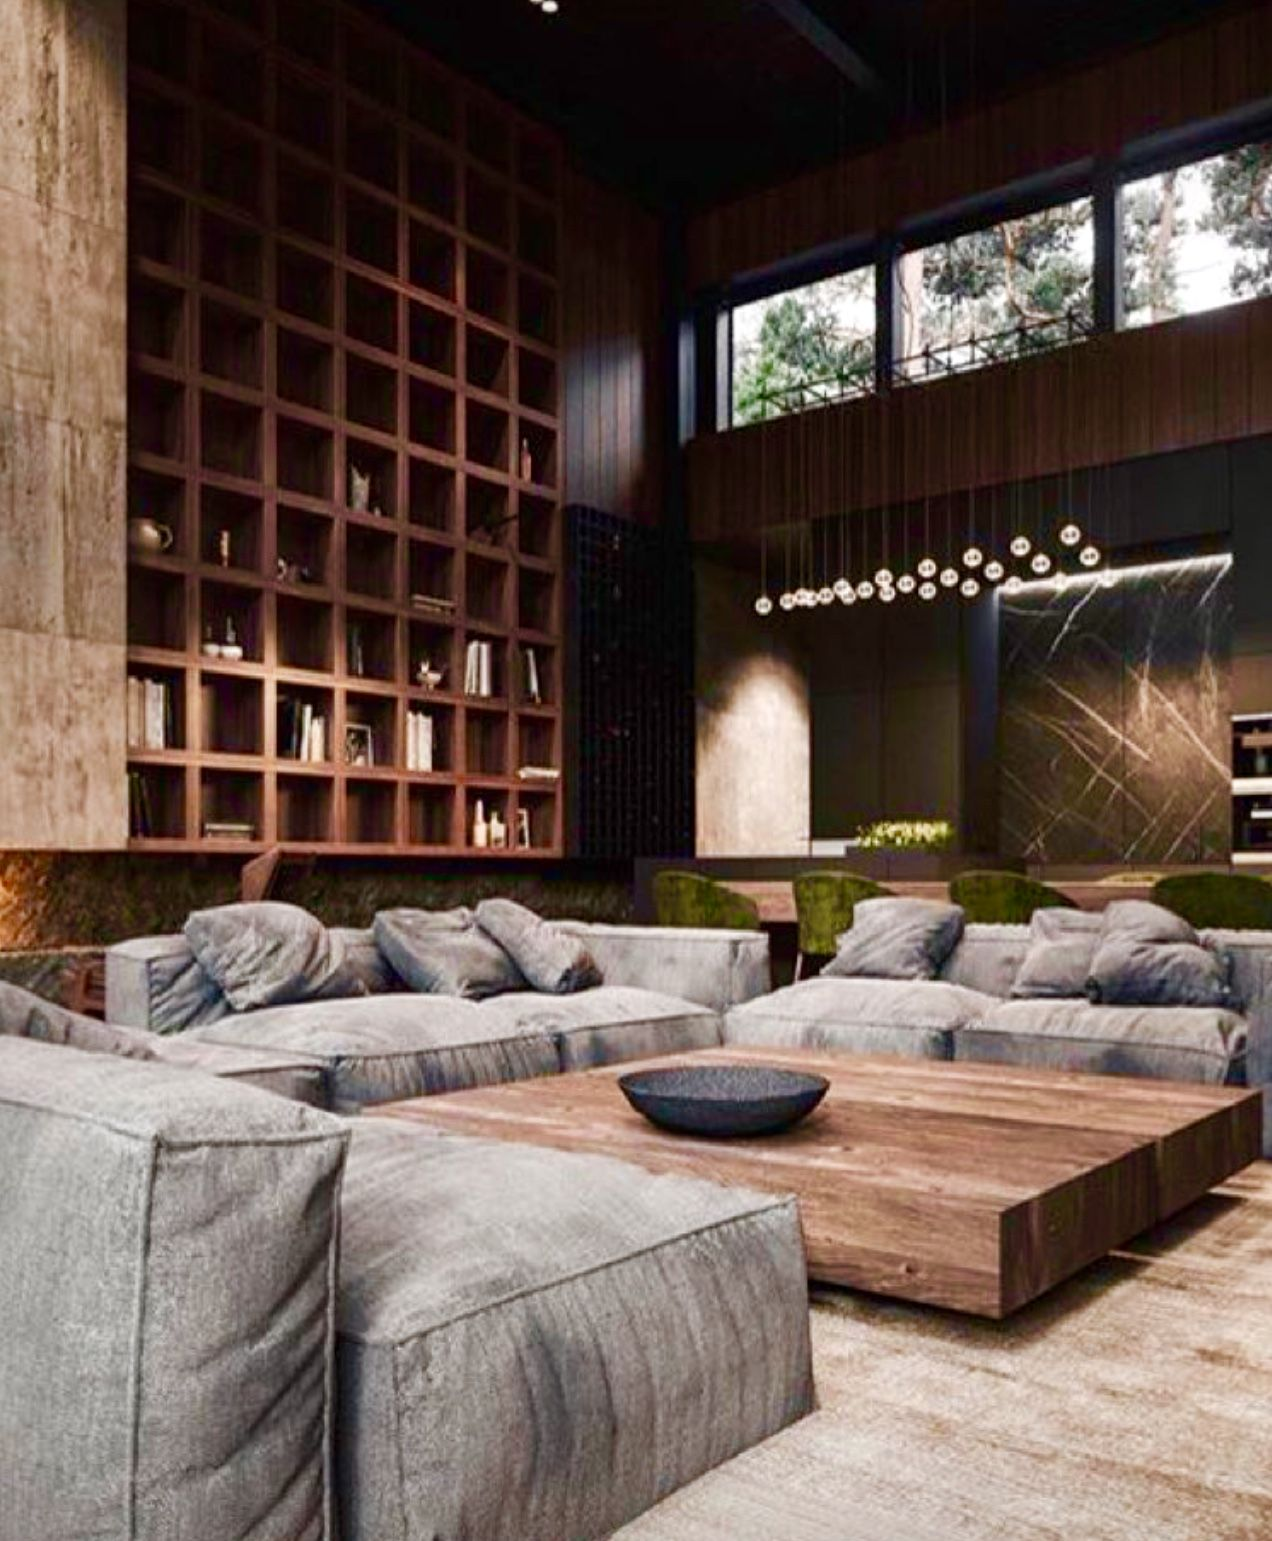 Pin By Arthit Insorn On Architecture Interior Interior Architecture Dream Furniture House Inside